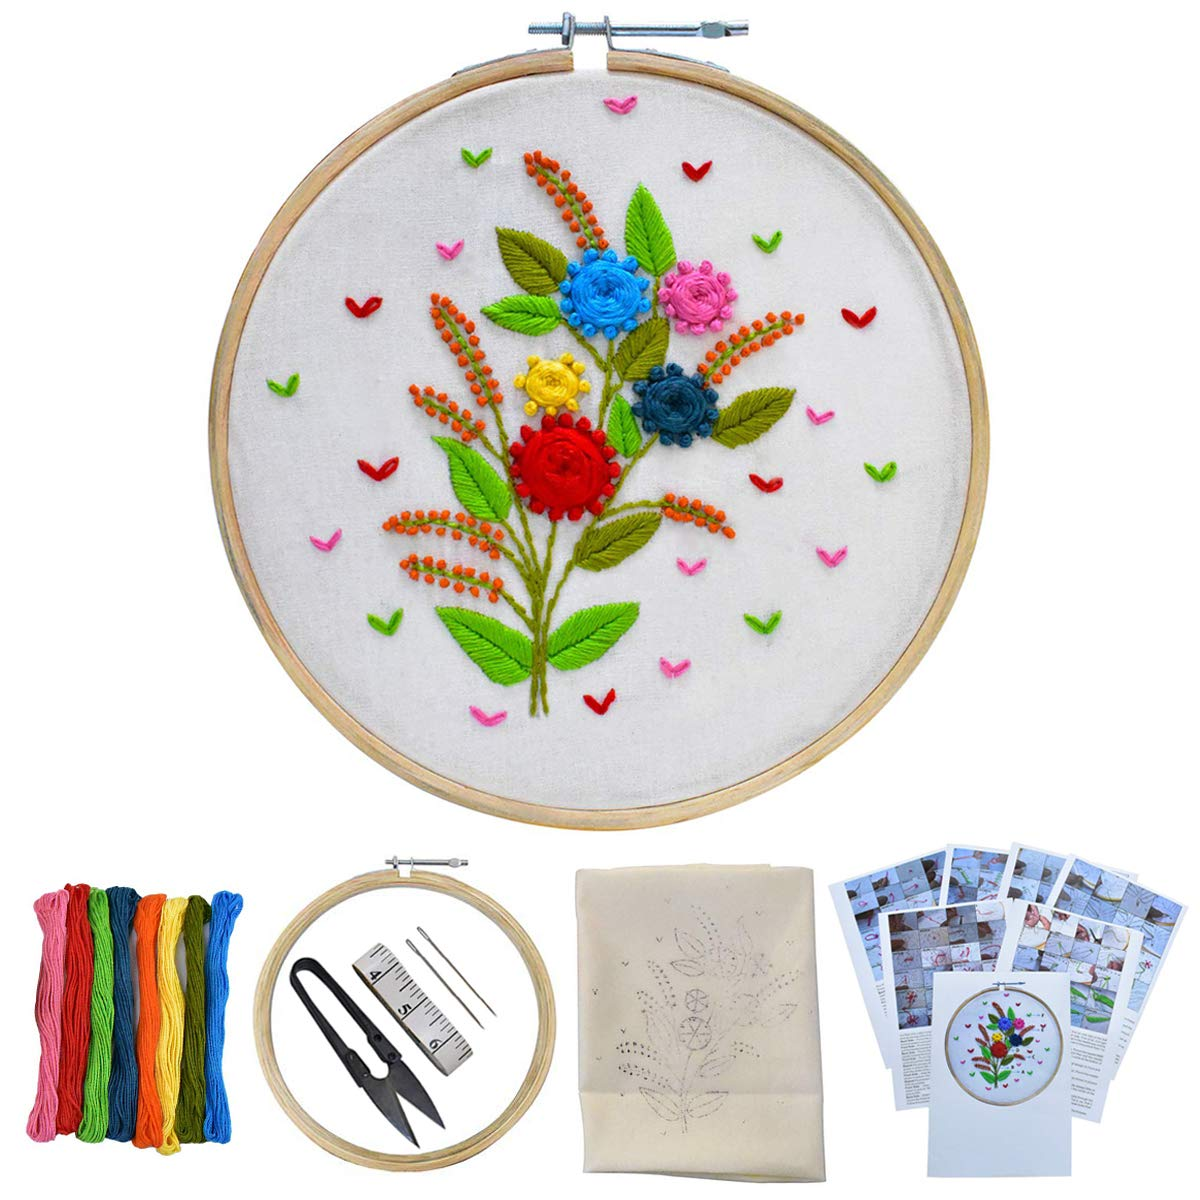 Embroiderymaterial Beginners Kit Hand Embroidery Tutorial DIY Kit with 20  Different Types of Embroidery Stitches 20 Items